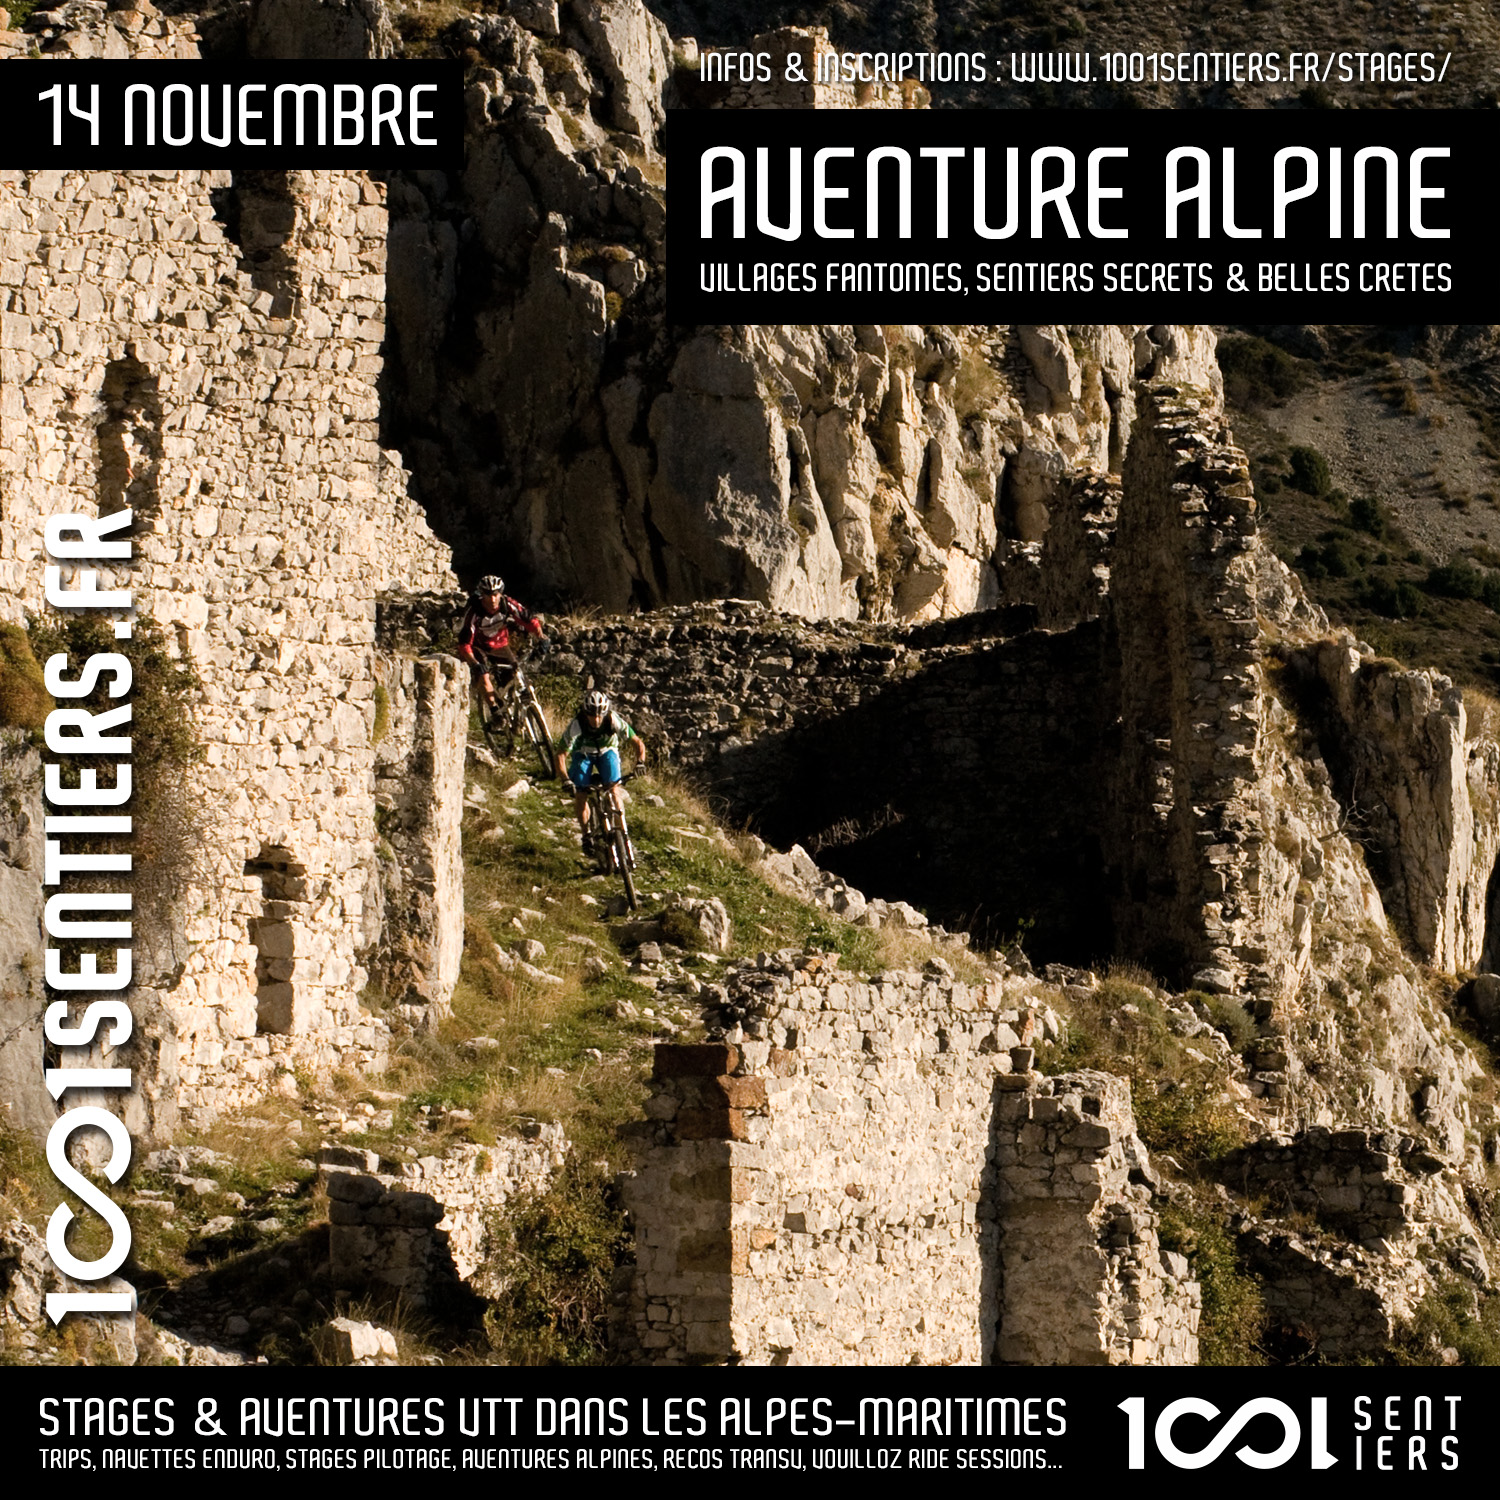 aventurealpine_villages-fantomes-2015